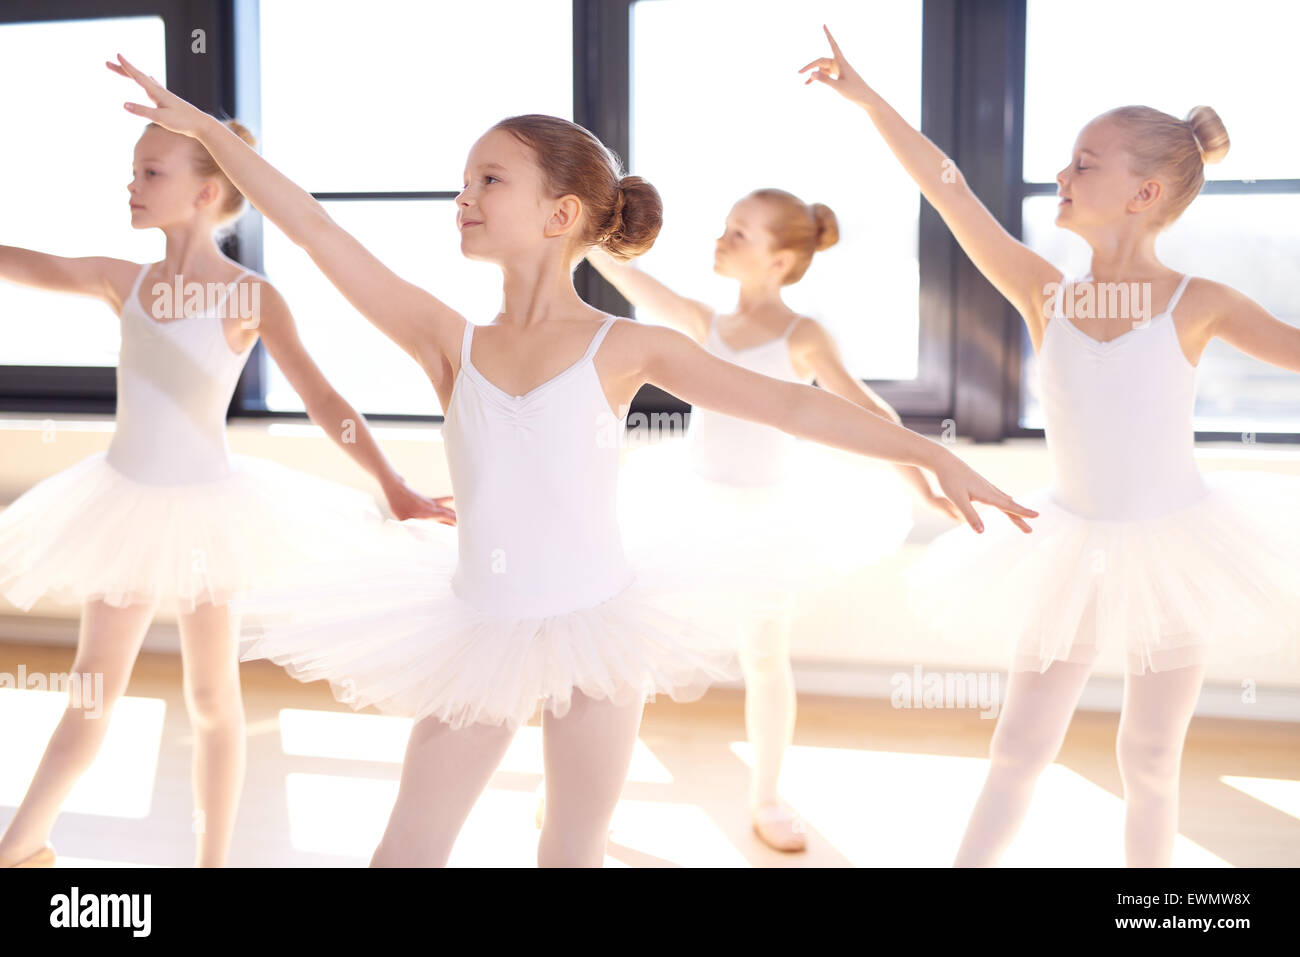 Choreographed dance by a group of graceful pretty young ballerinas practicing during class at a classical ballet - Stock Image